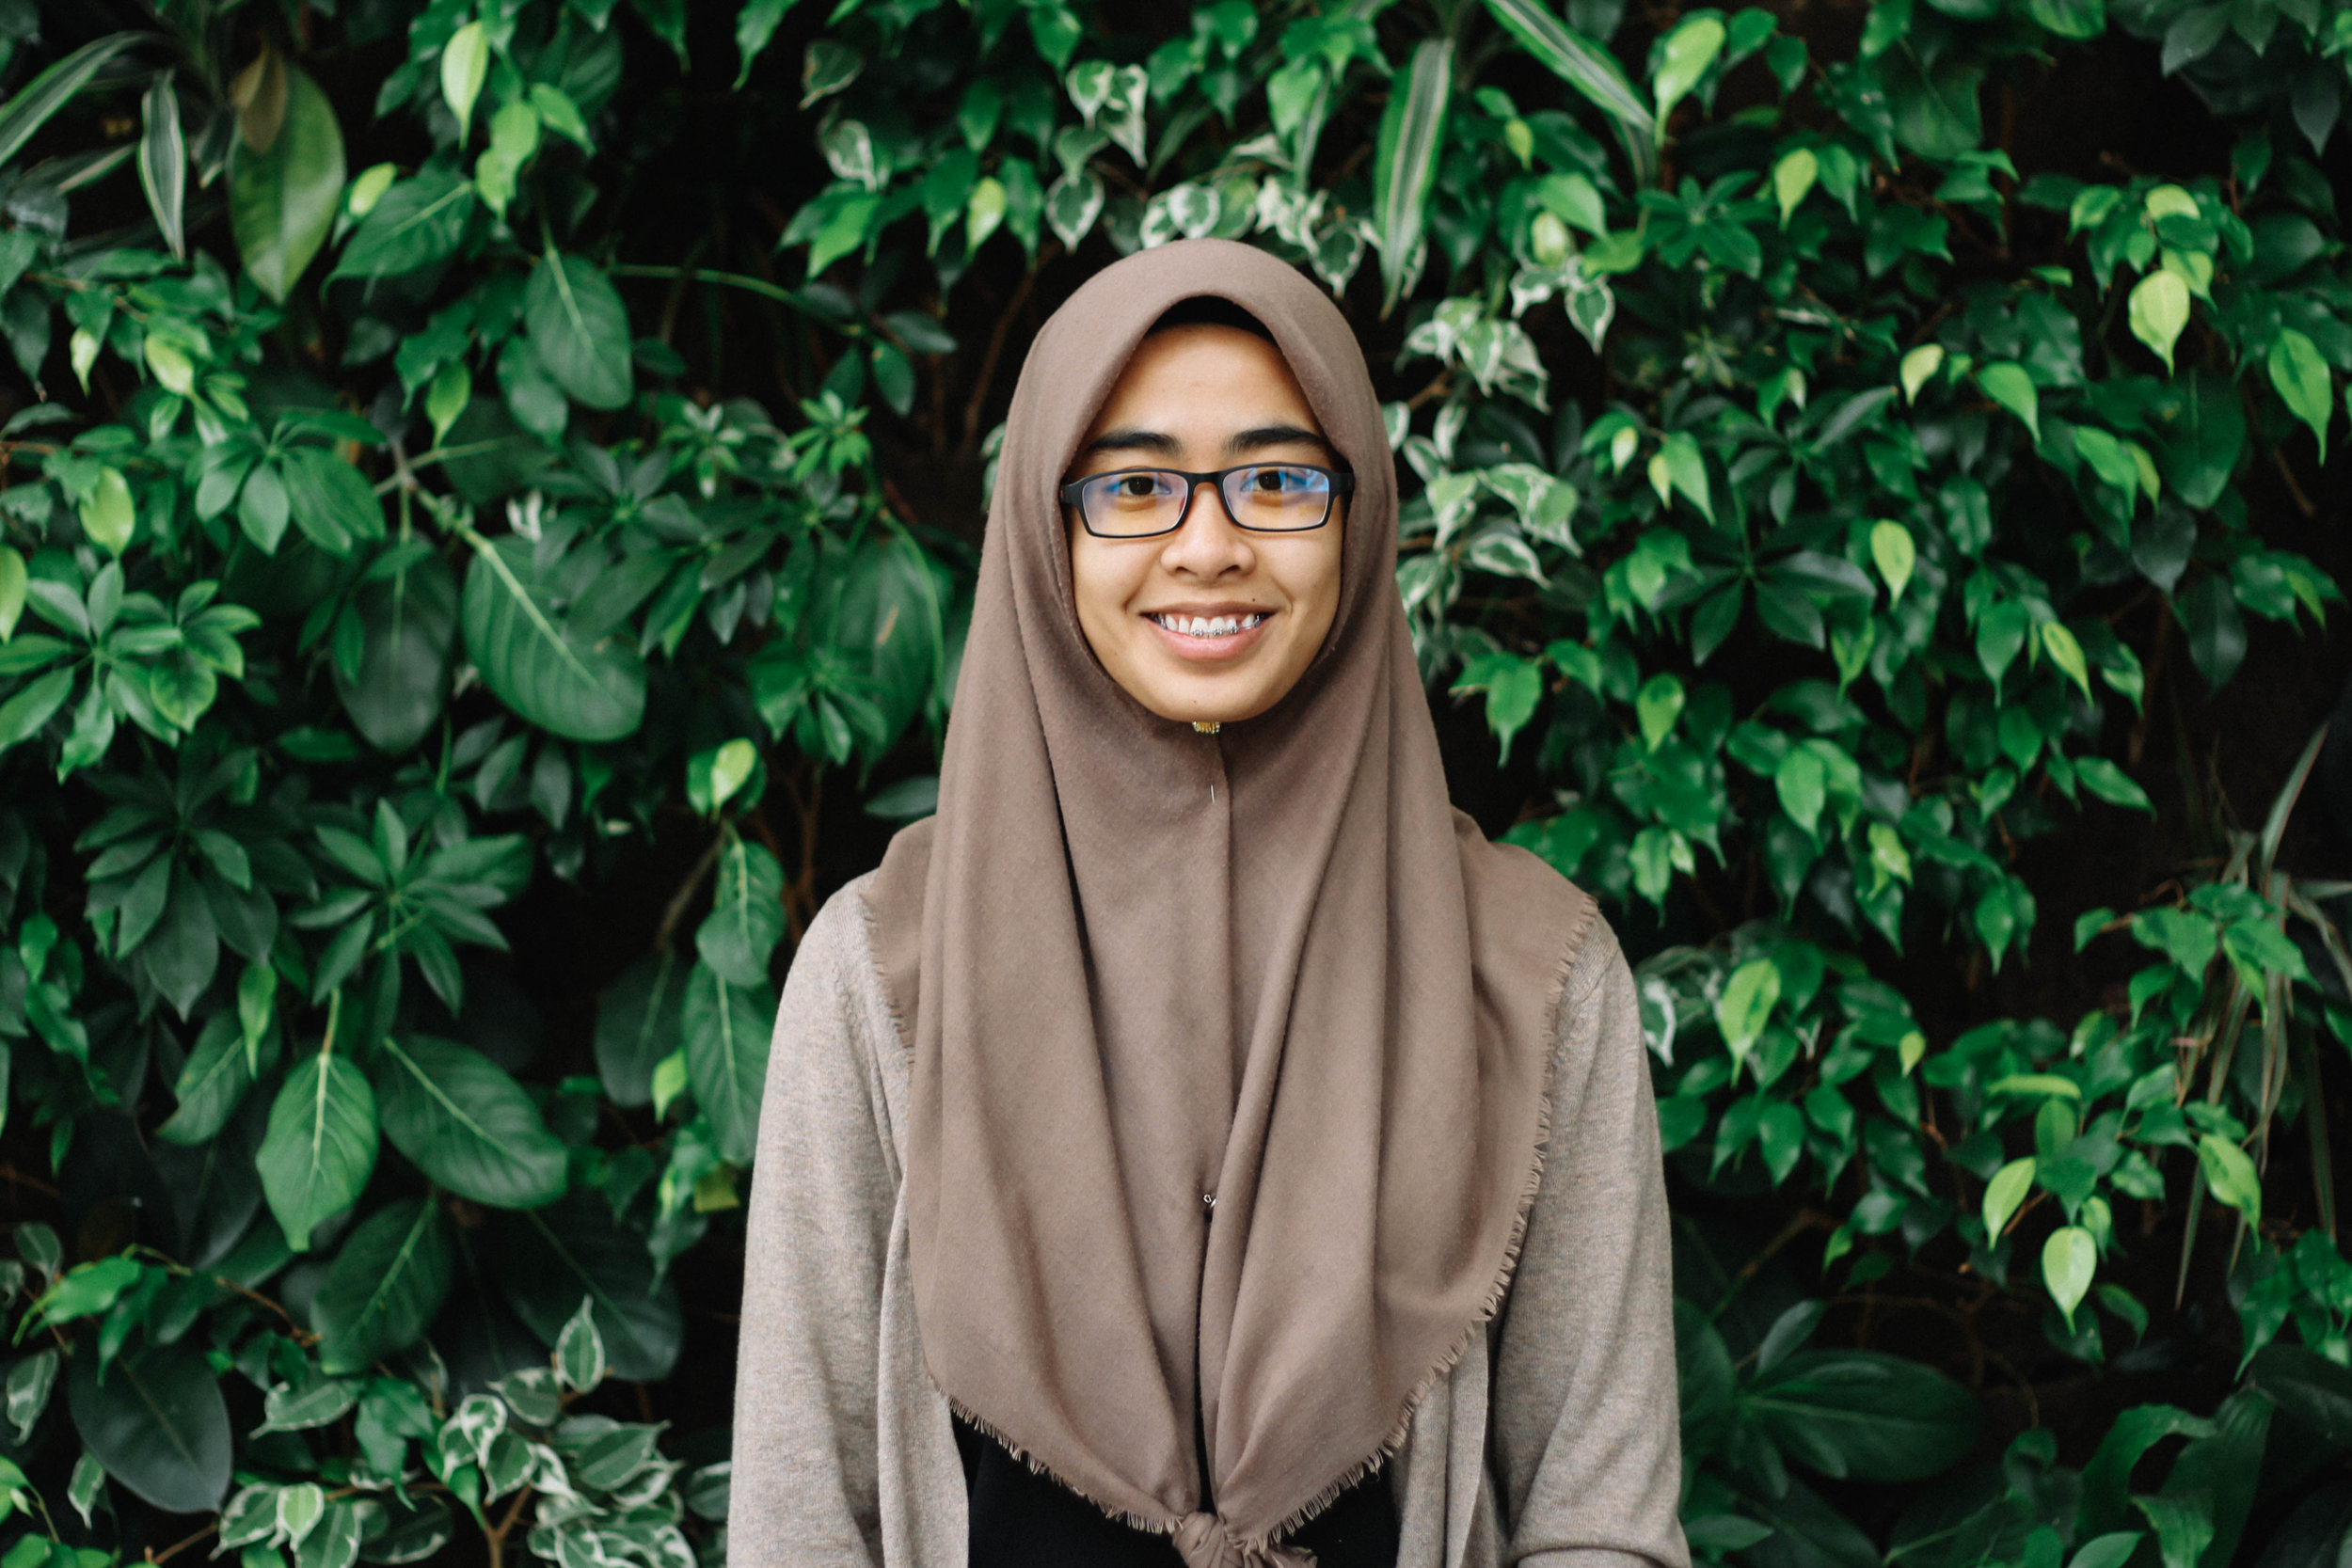 IMEX - Promoting STEM education in Malaysia by pairing students with lab researchers for educational and shadowing programs.ALIA MELIKI